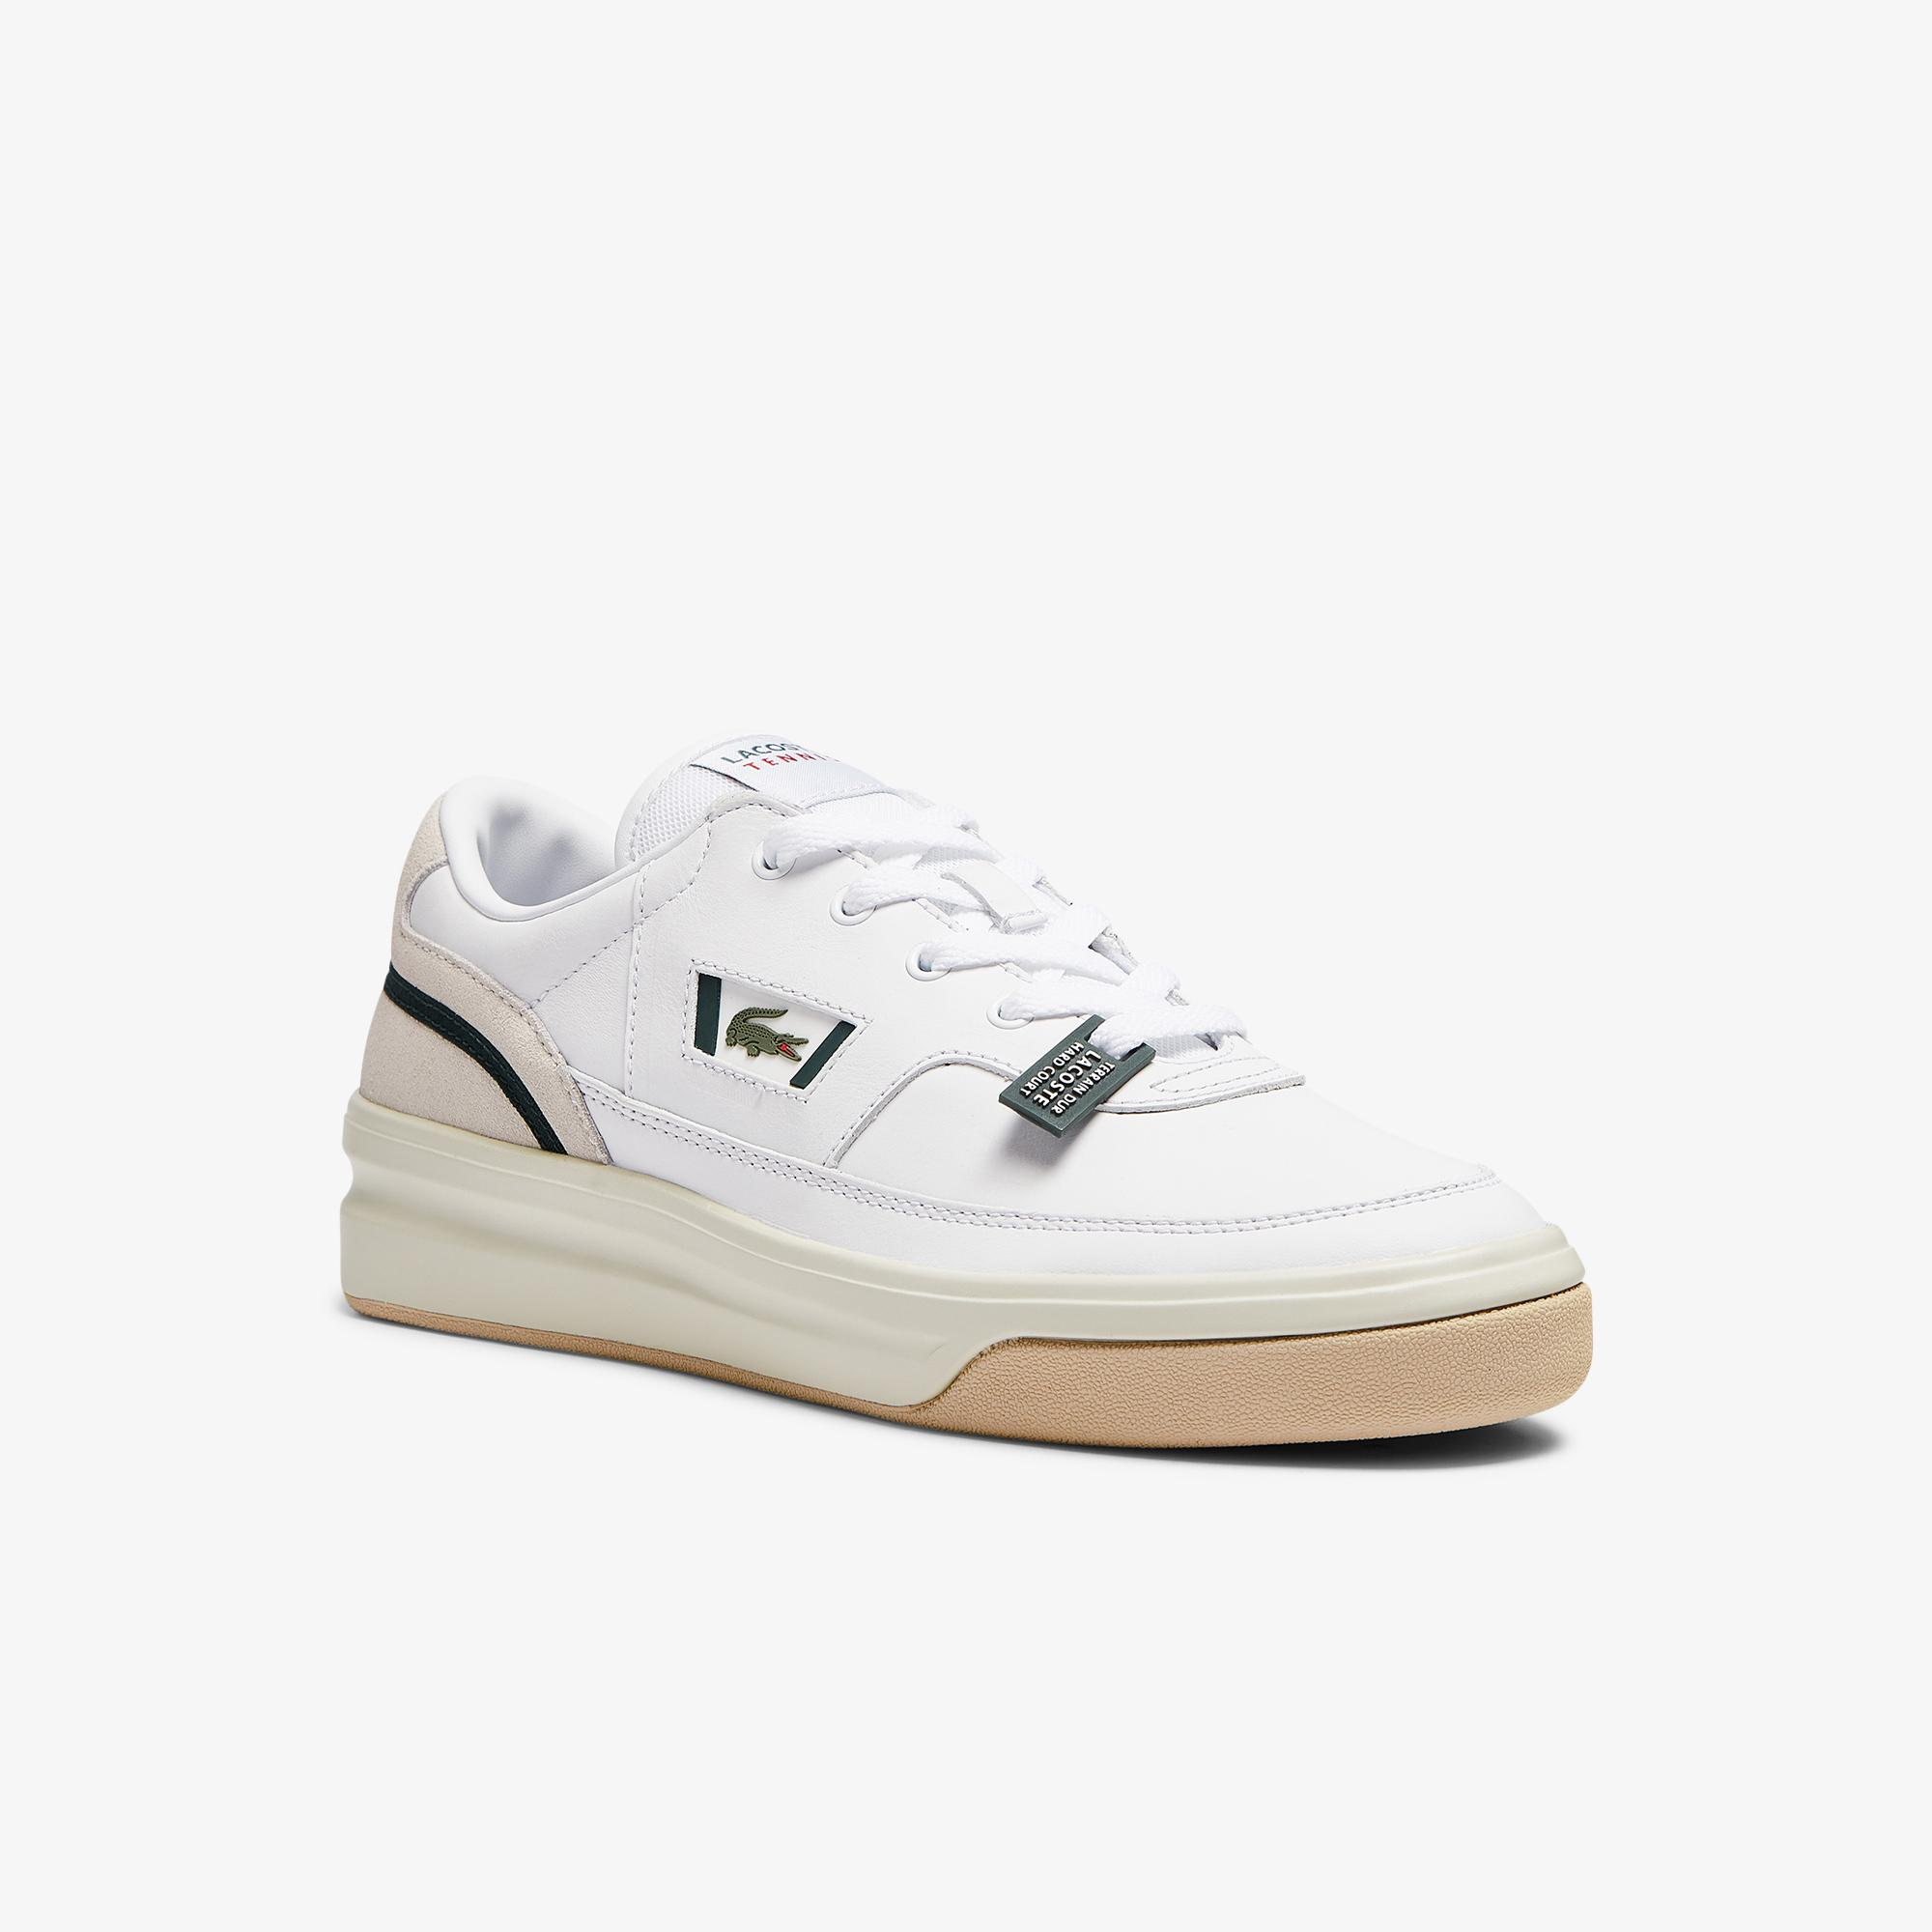 Lacoste Men's G80 0721 1 Sma Shoes